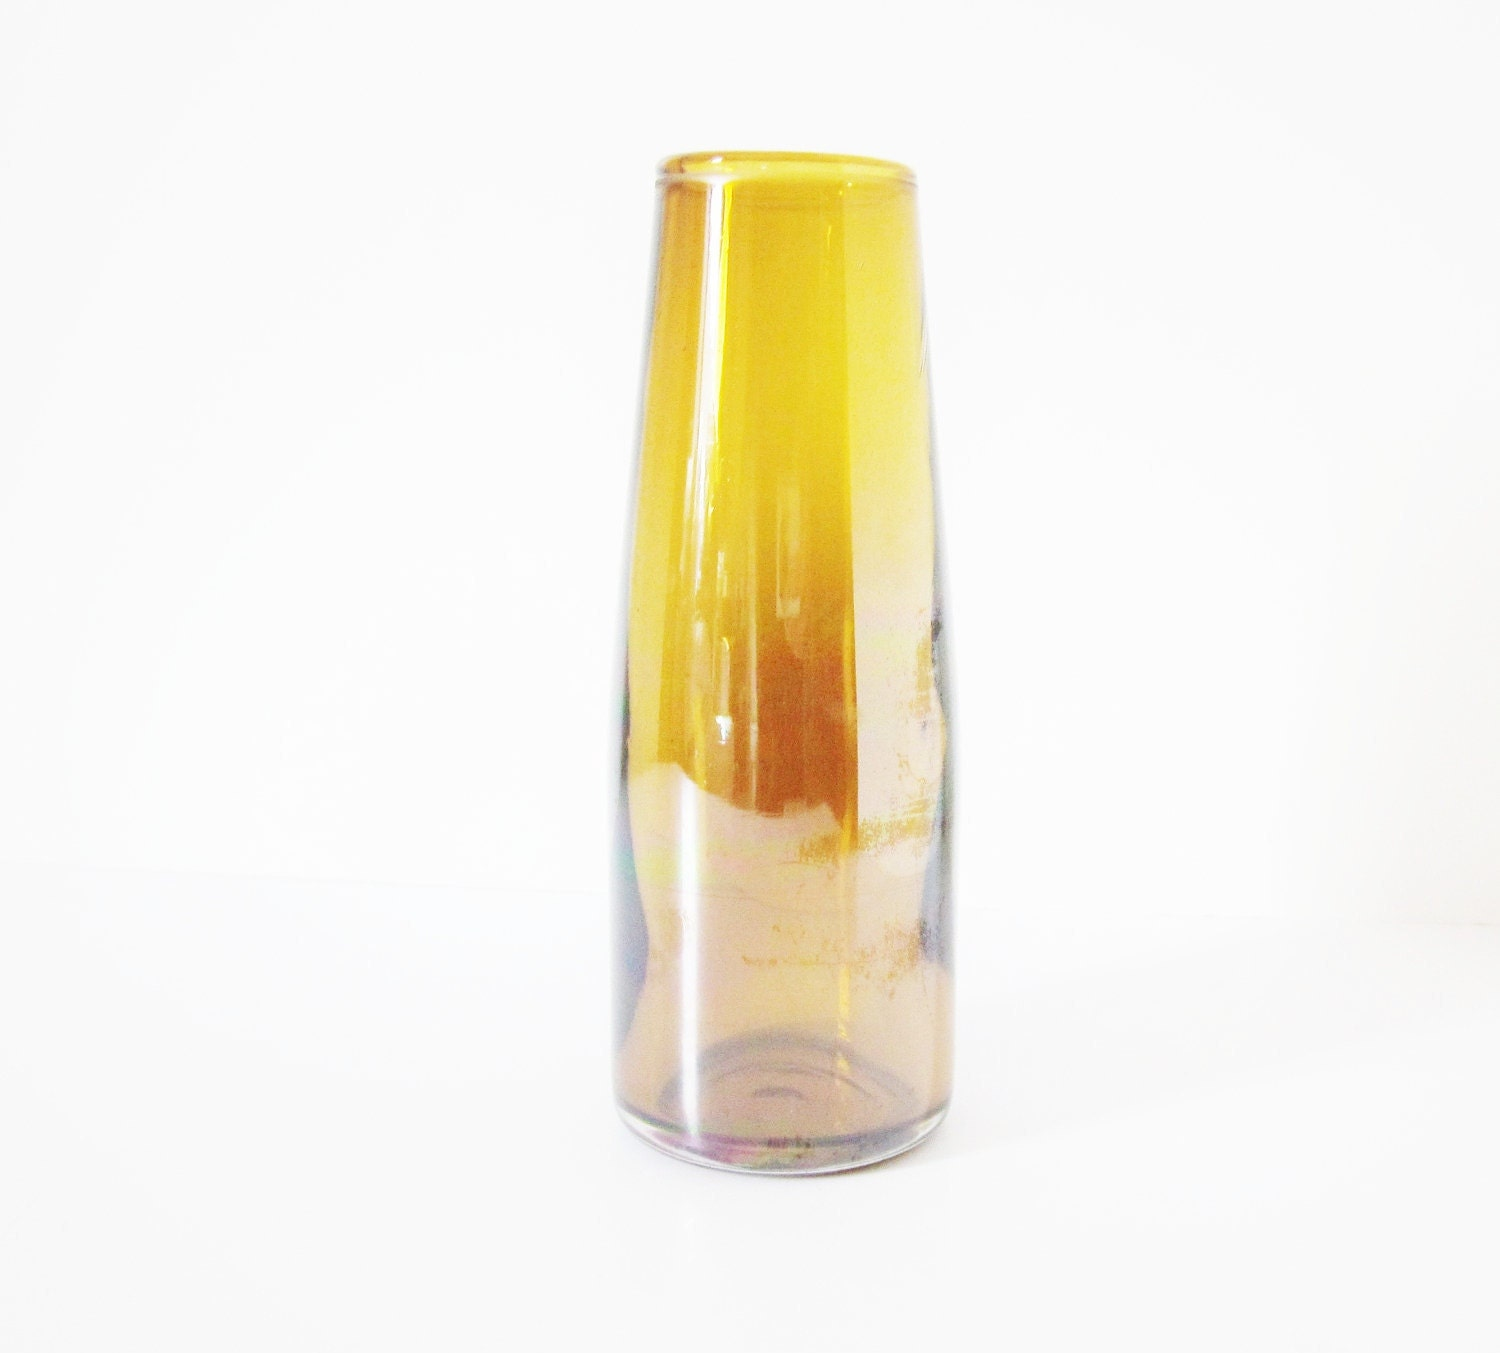 Vintage Amber Art Glass Vase Topaz Golden Iridescent Sheen - jarmfarm